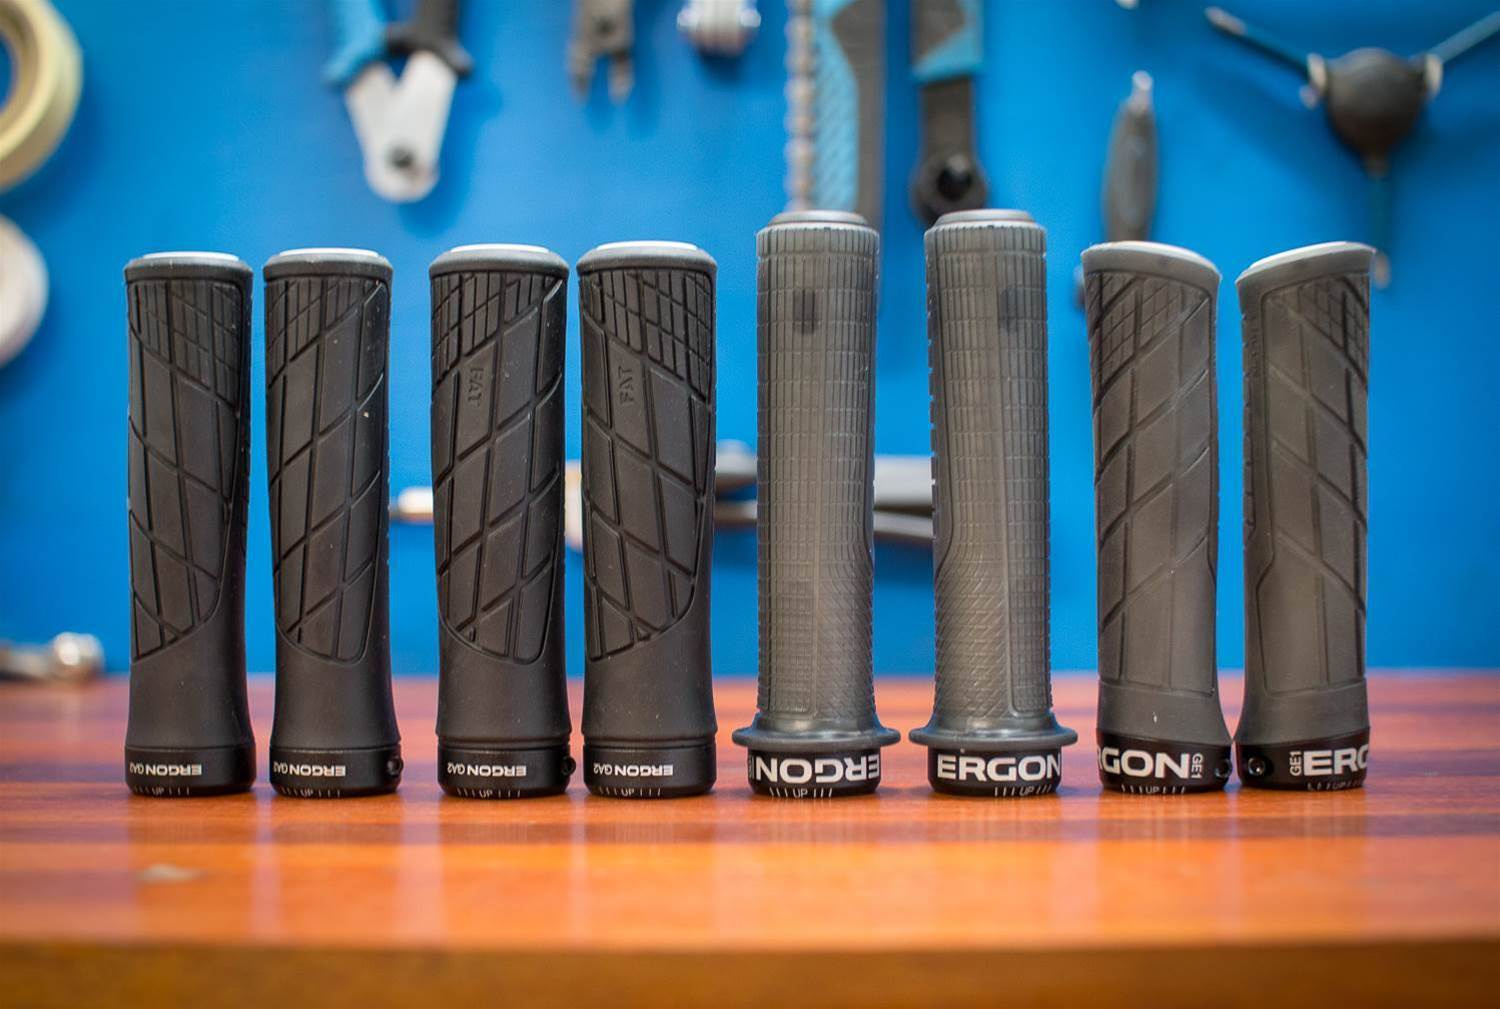 Finding the right Ergon MTB grip